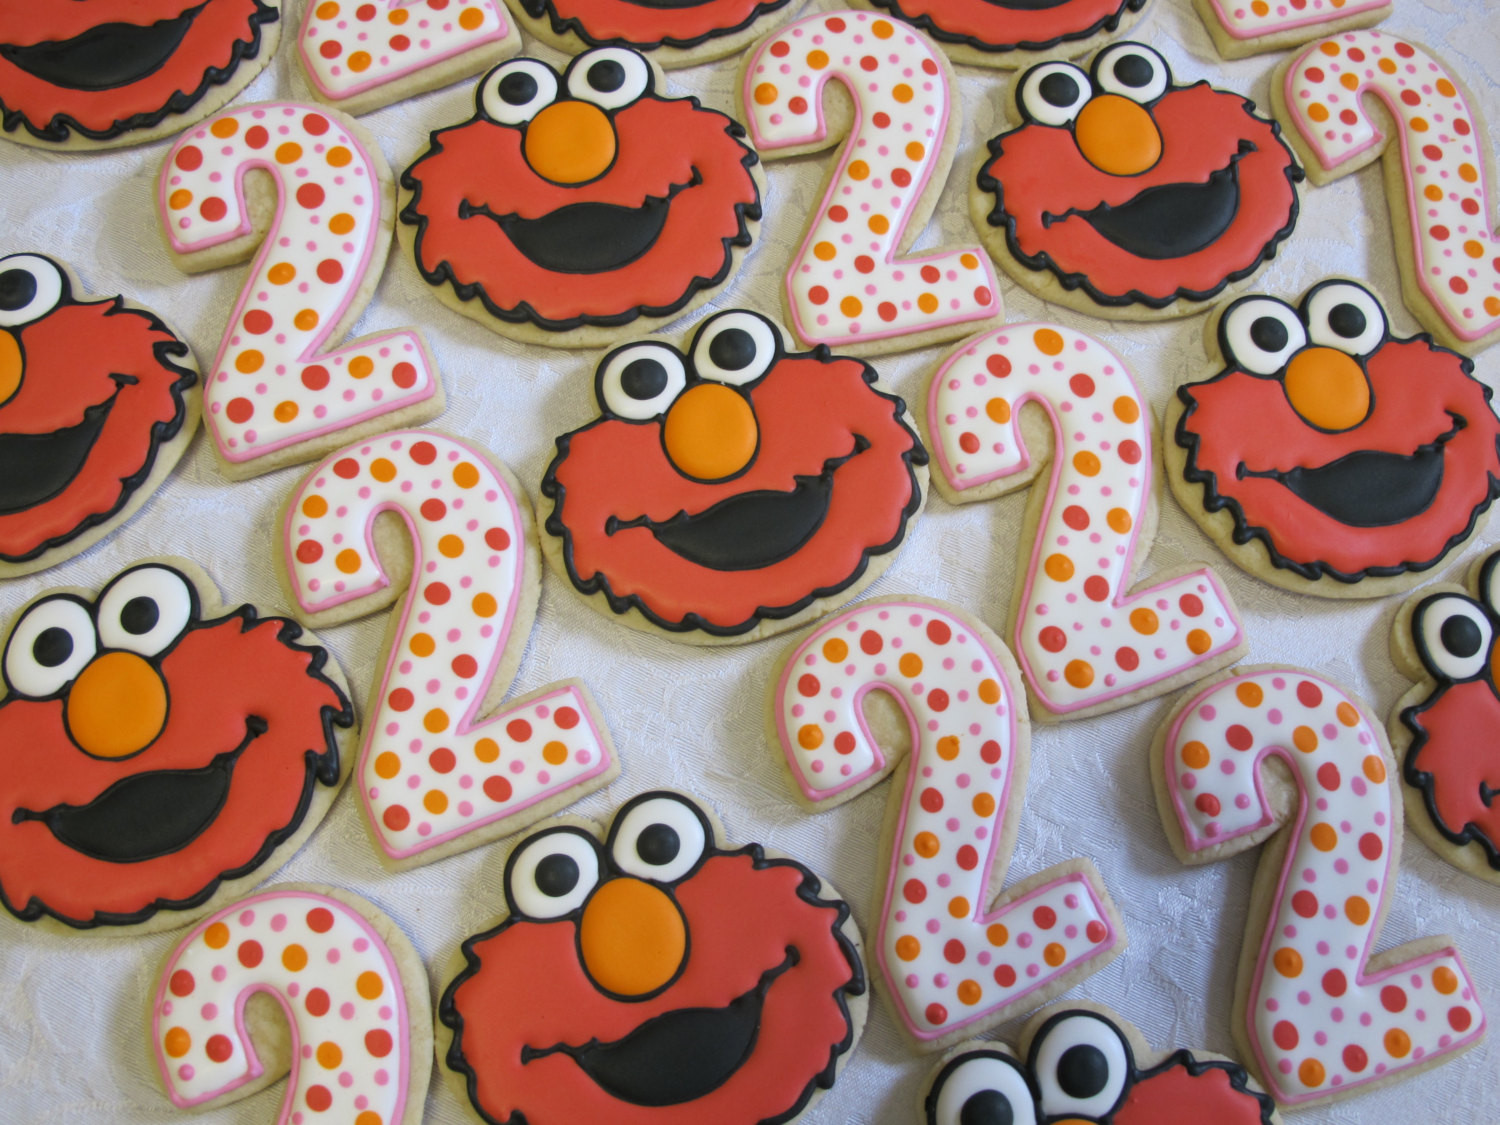 Best ideas about Elmo Birthday Decorations . Save or Pin Elmo Birthday Party Ideas by a Professional Party Planner Now.